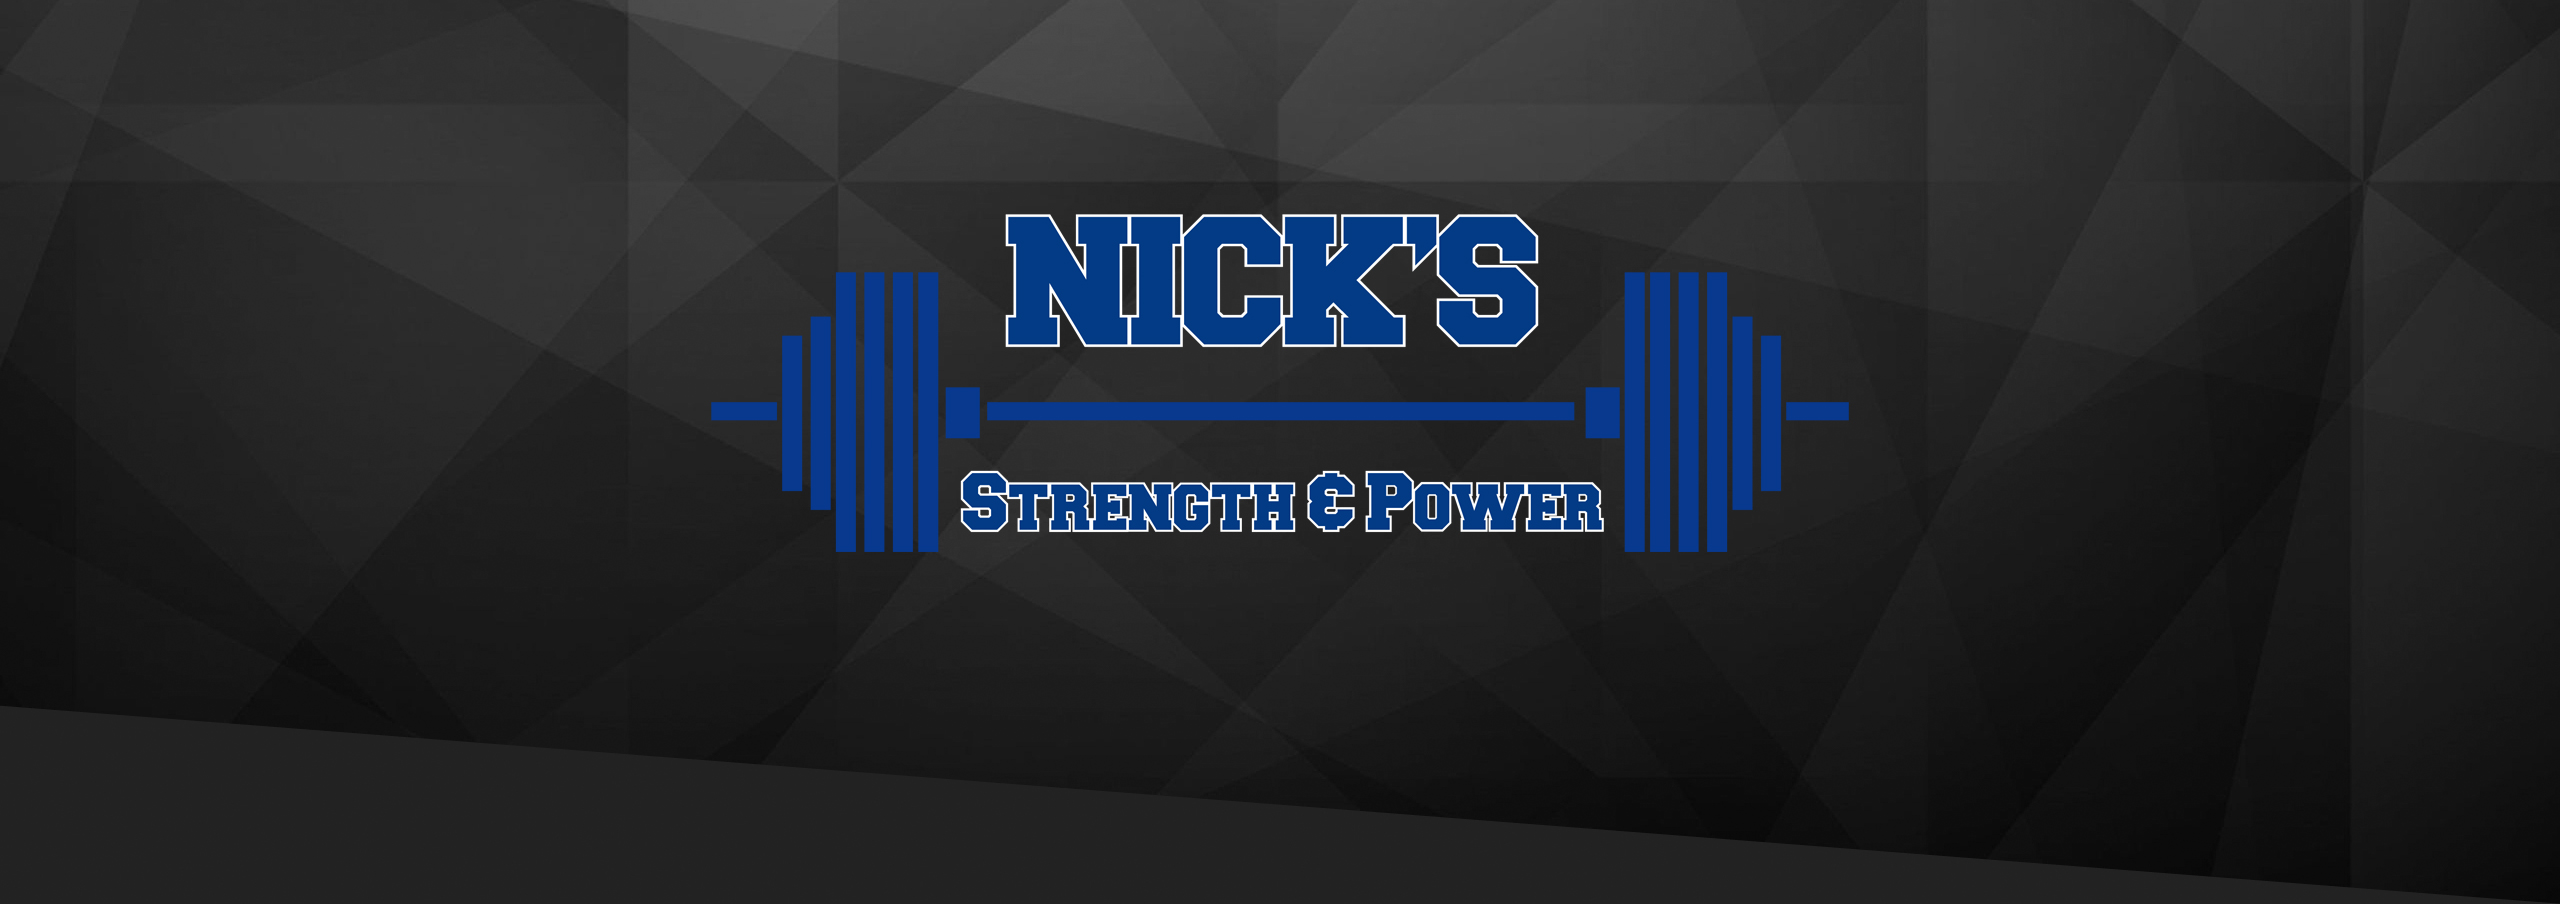 Nicks strength and power